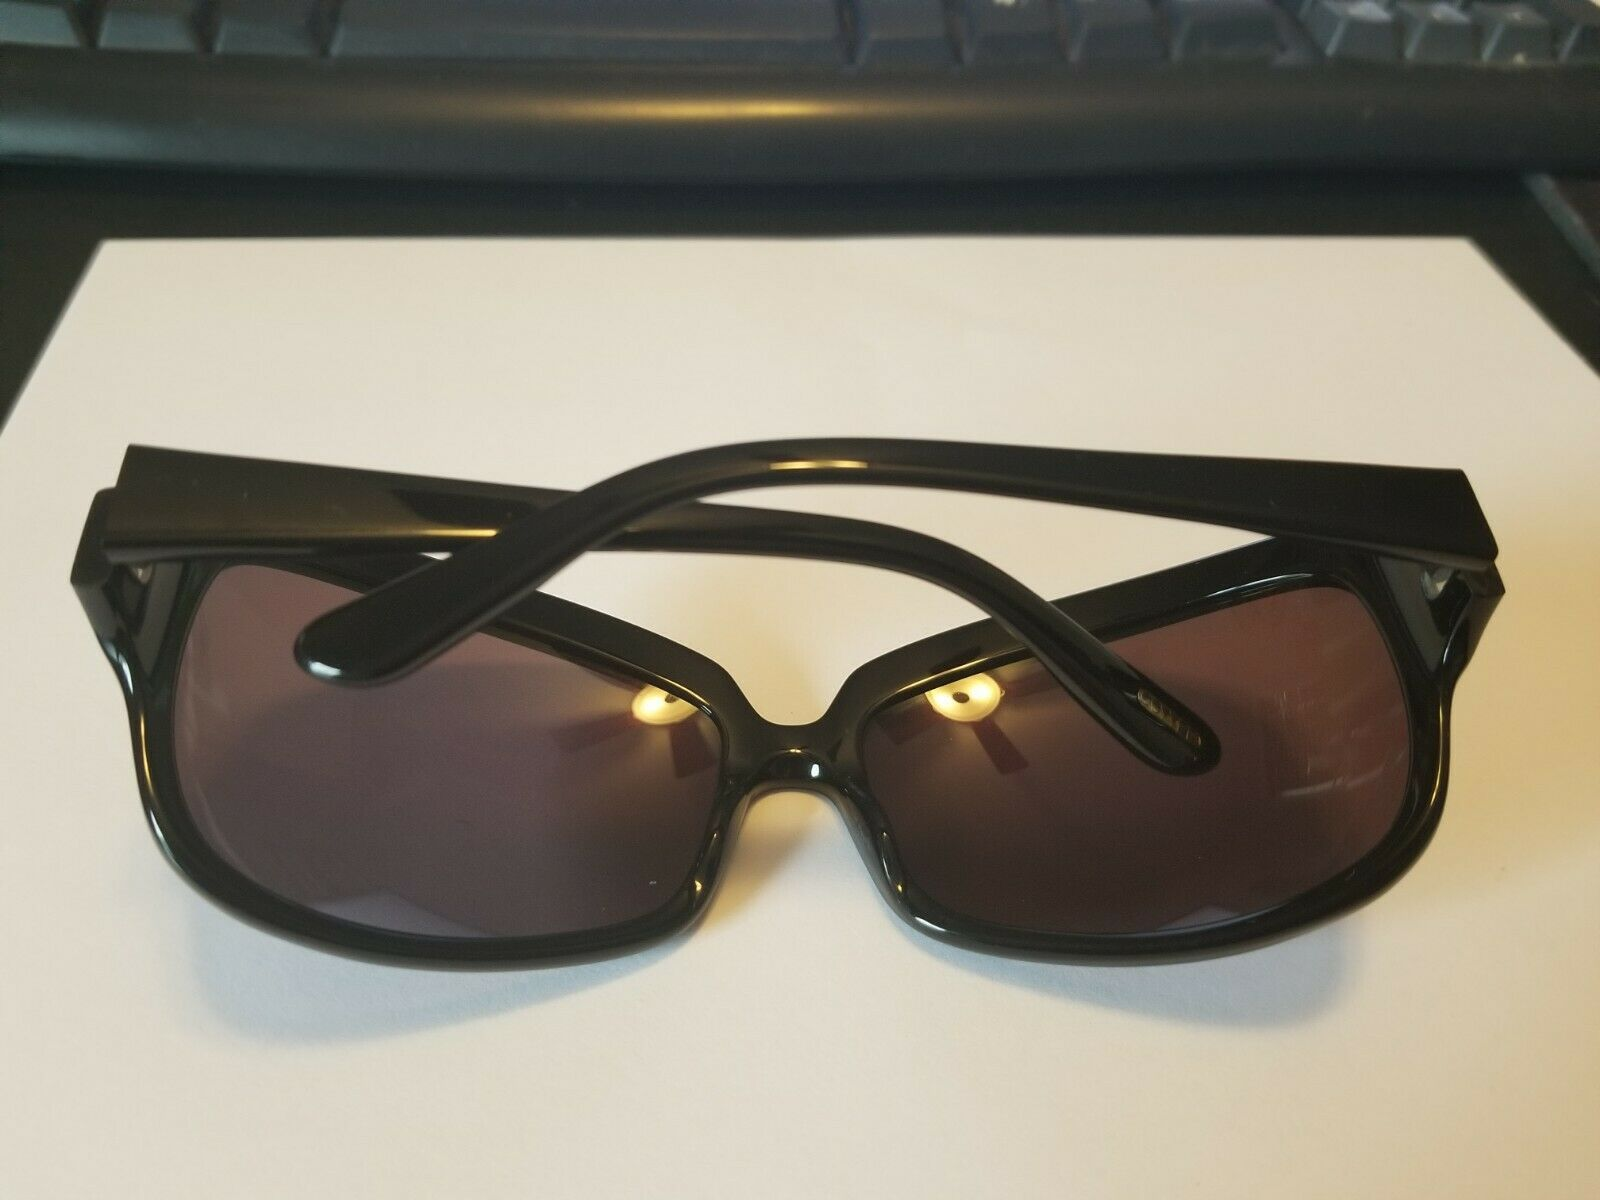 Oliver Peoples Women's Sunglasses BRAND NEW Cameo BK 66 16-115 ..PERFECT image 5